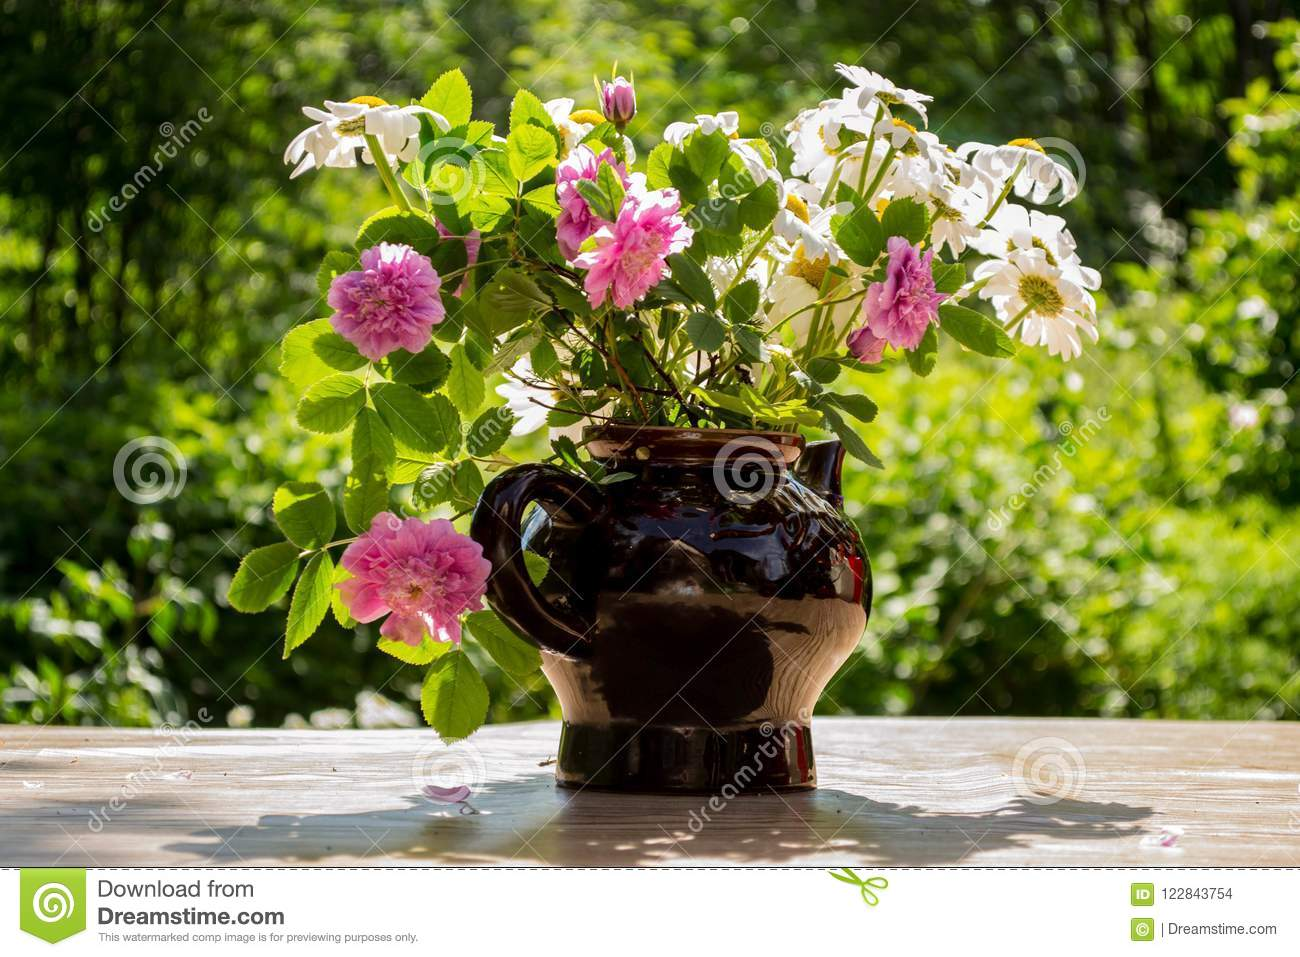 Beautiful Blooming Flowers In A Vase In The Gardern Stock Photo